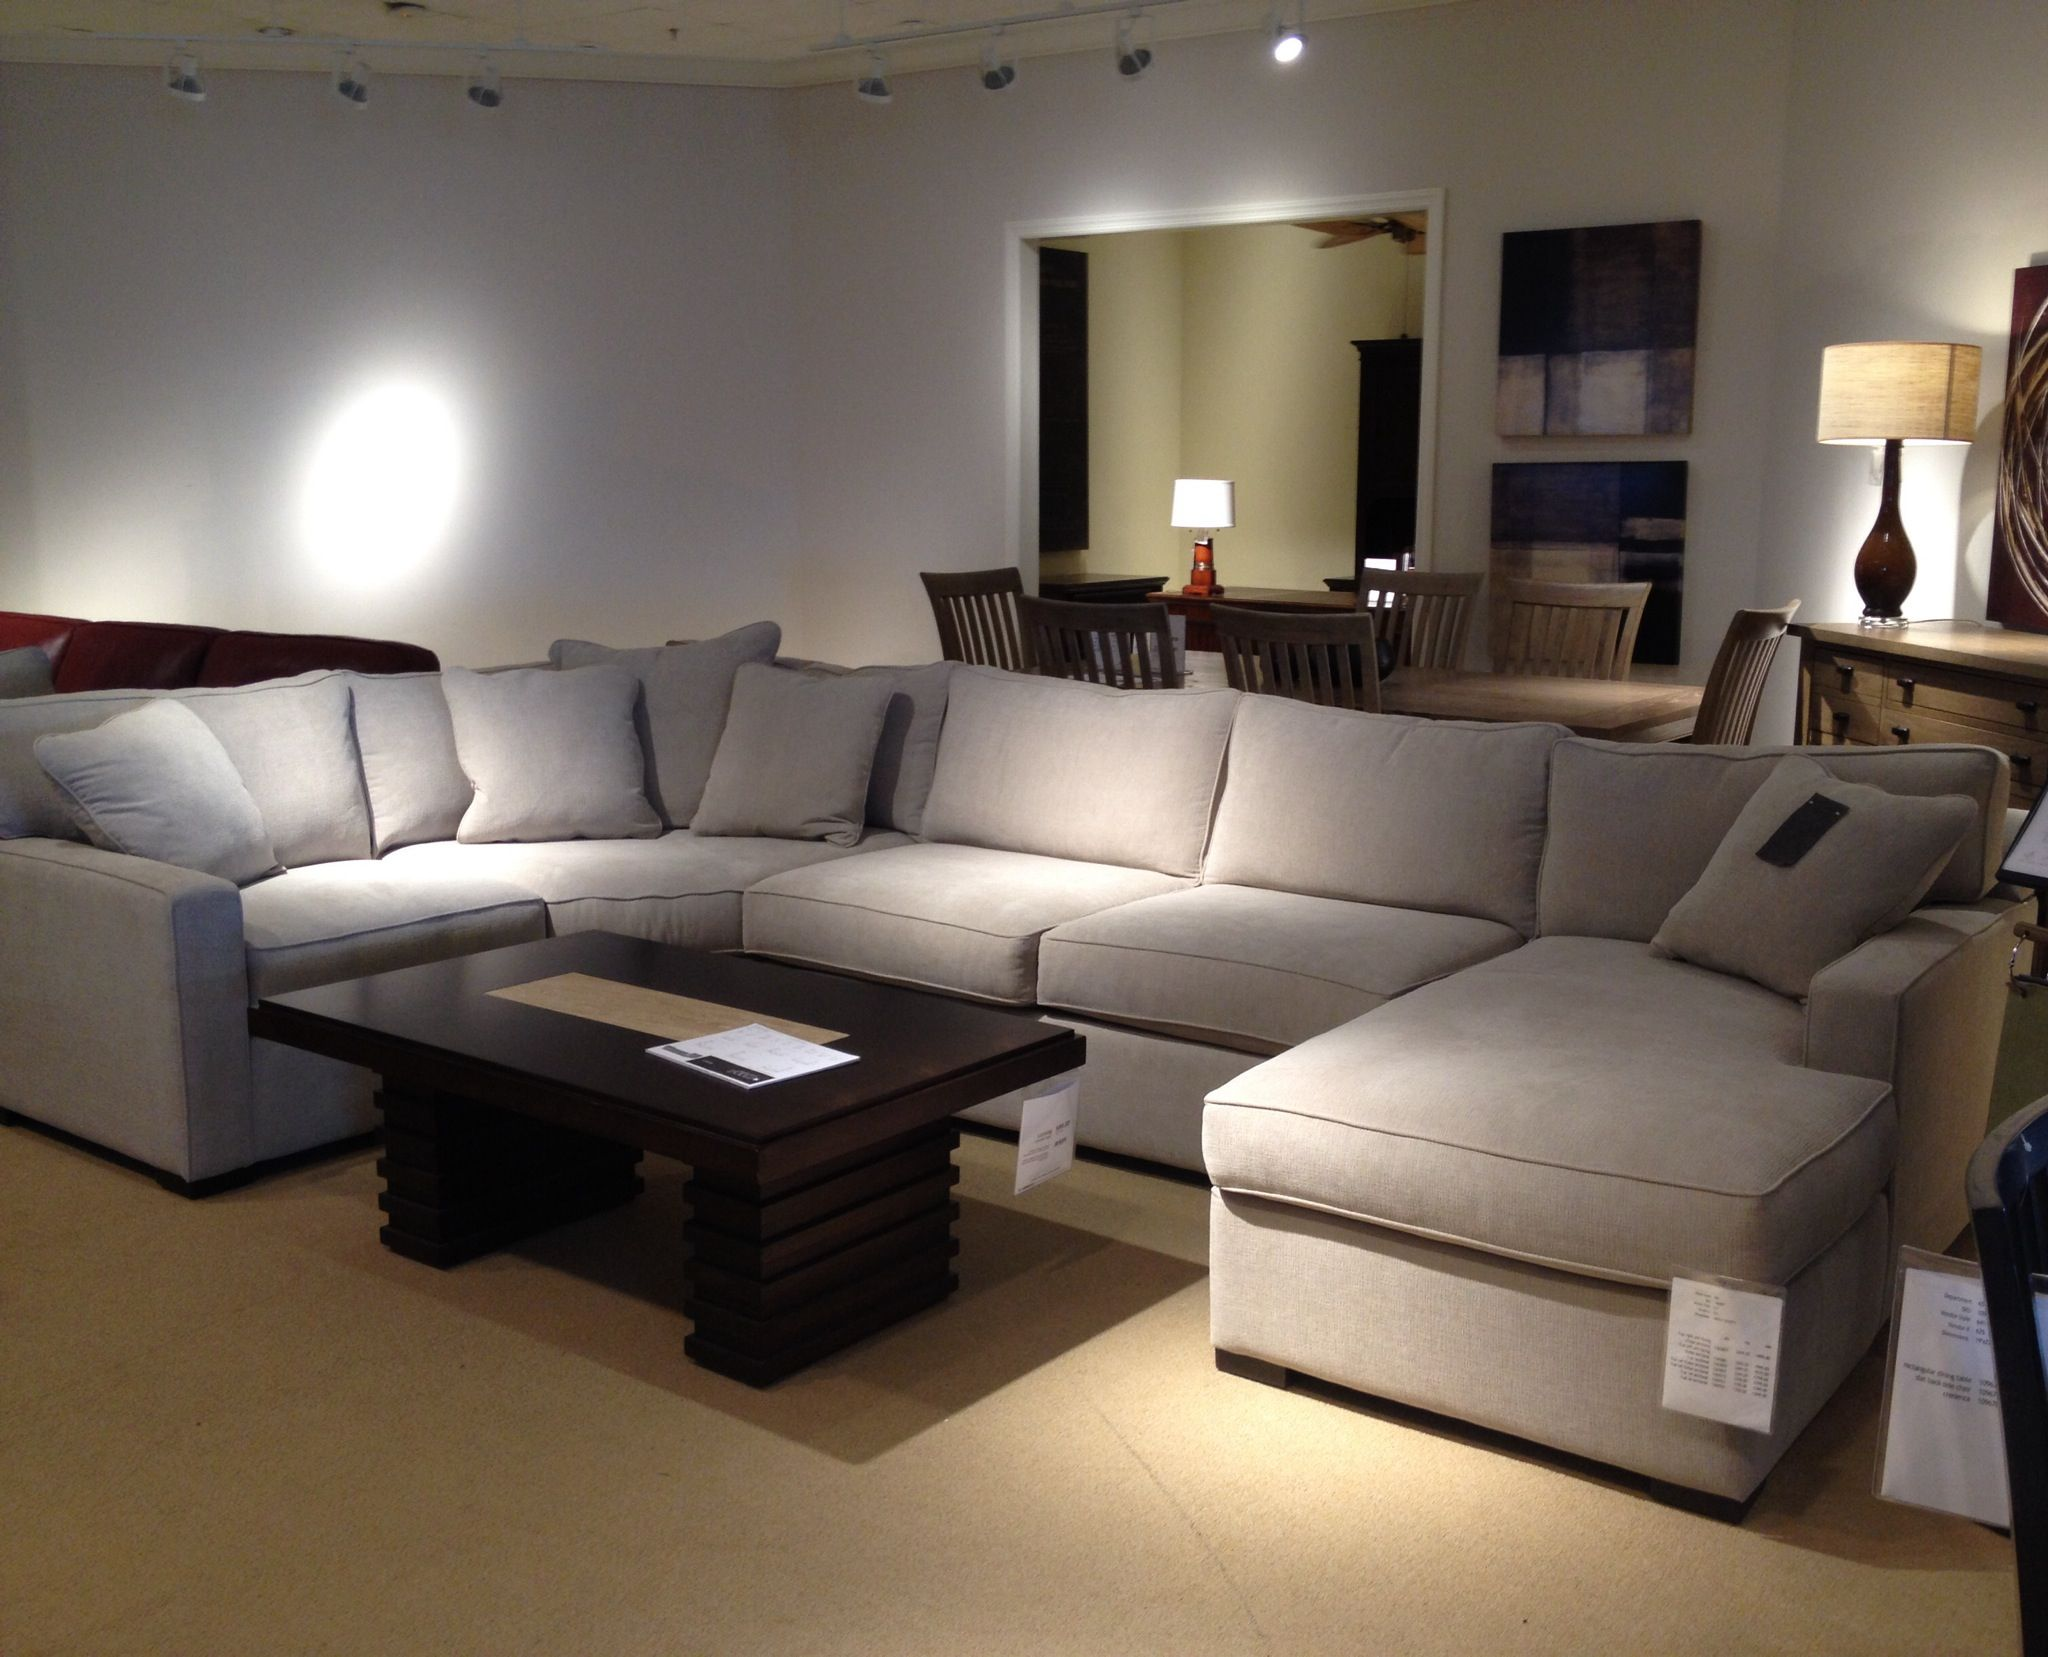 Radley 4 piece sectional sofa from Macys Whats great is we can